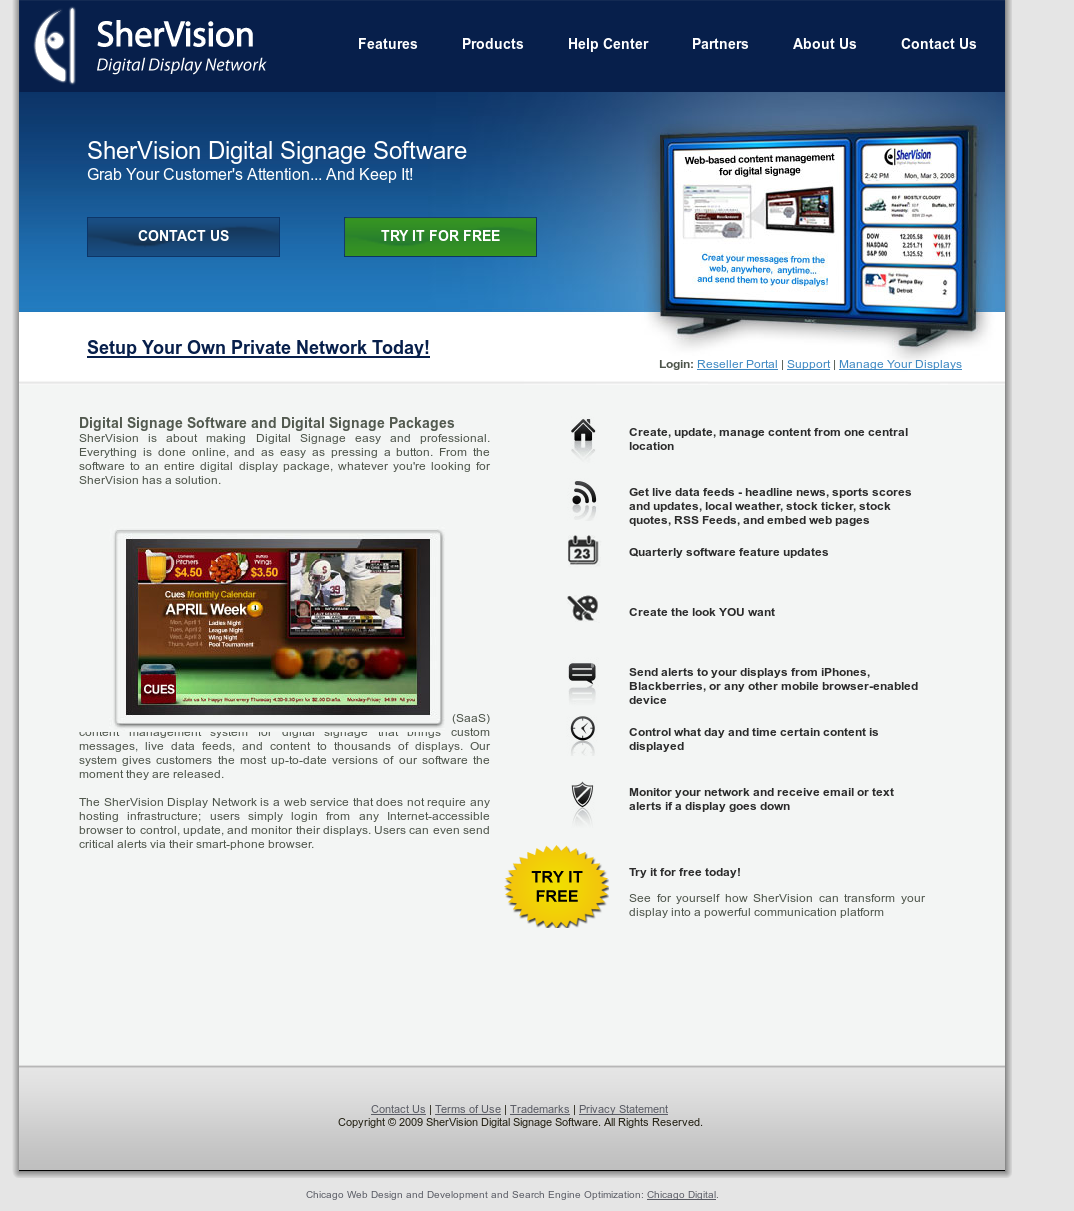 Shervision Digital Signage Software Competitors, Revenue and